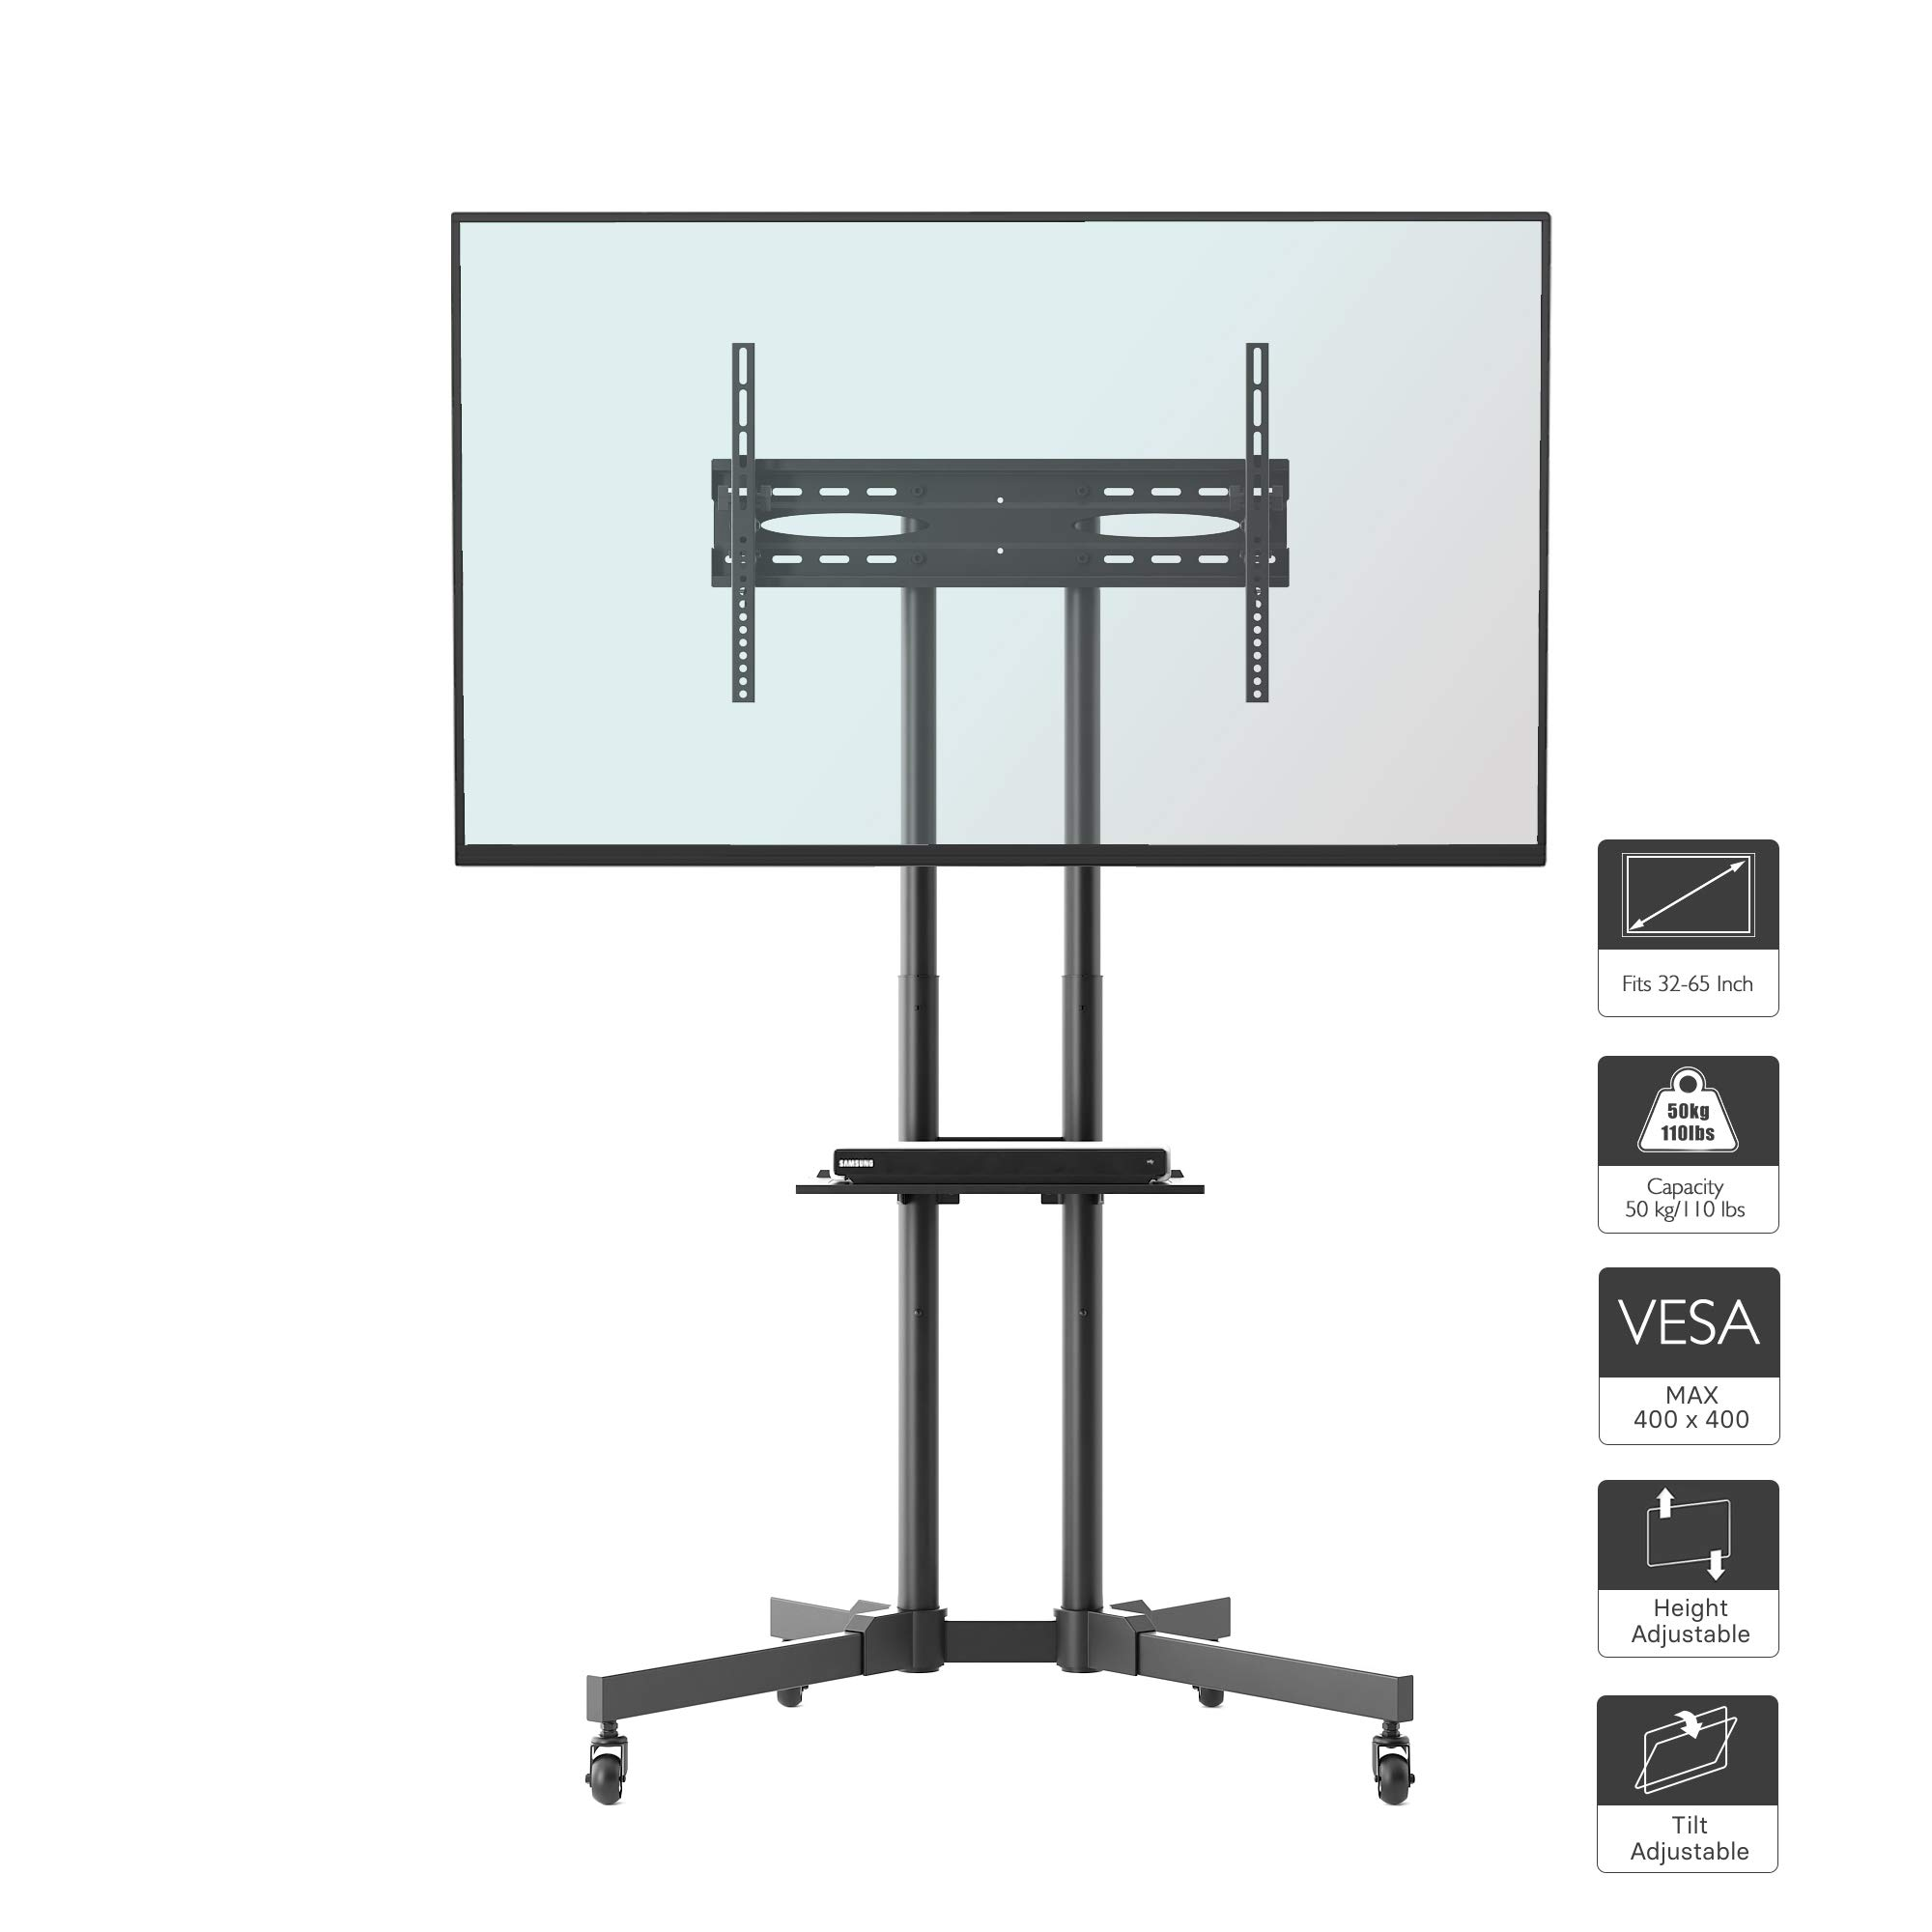 1home Mobile TV Stand Trolley Cart Mount Exhibition Display for 32''-65'' Plasma/LCD/LED